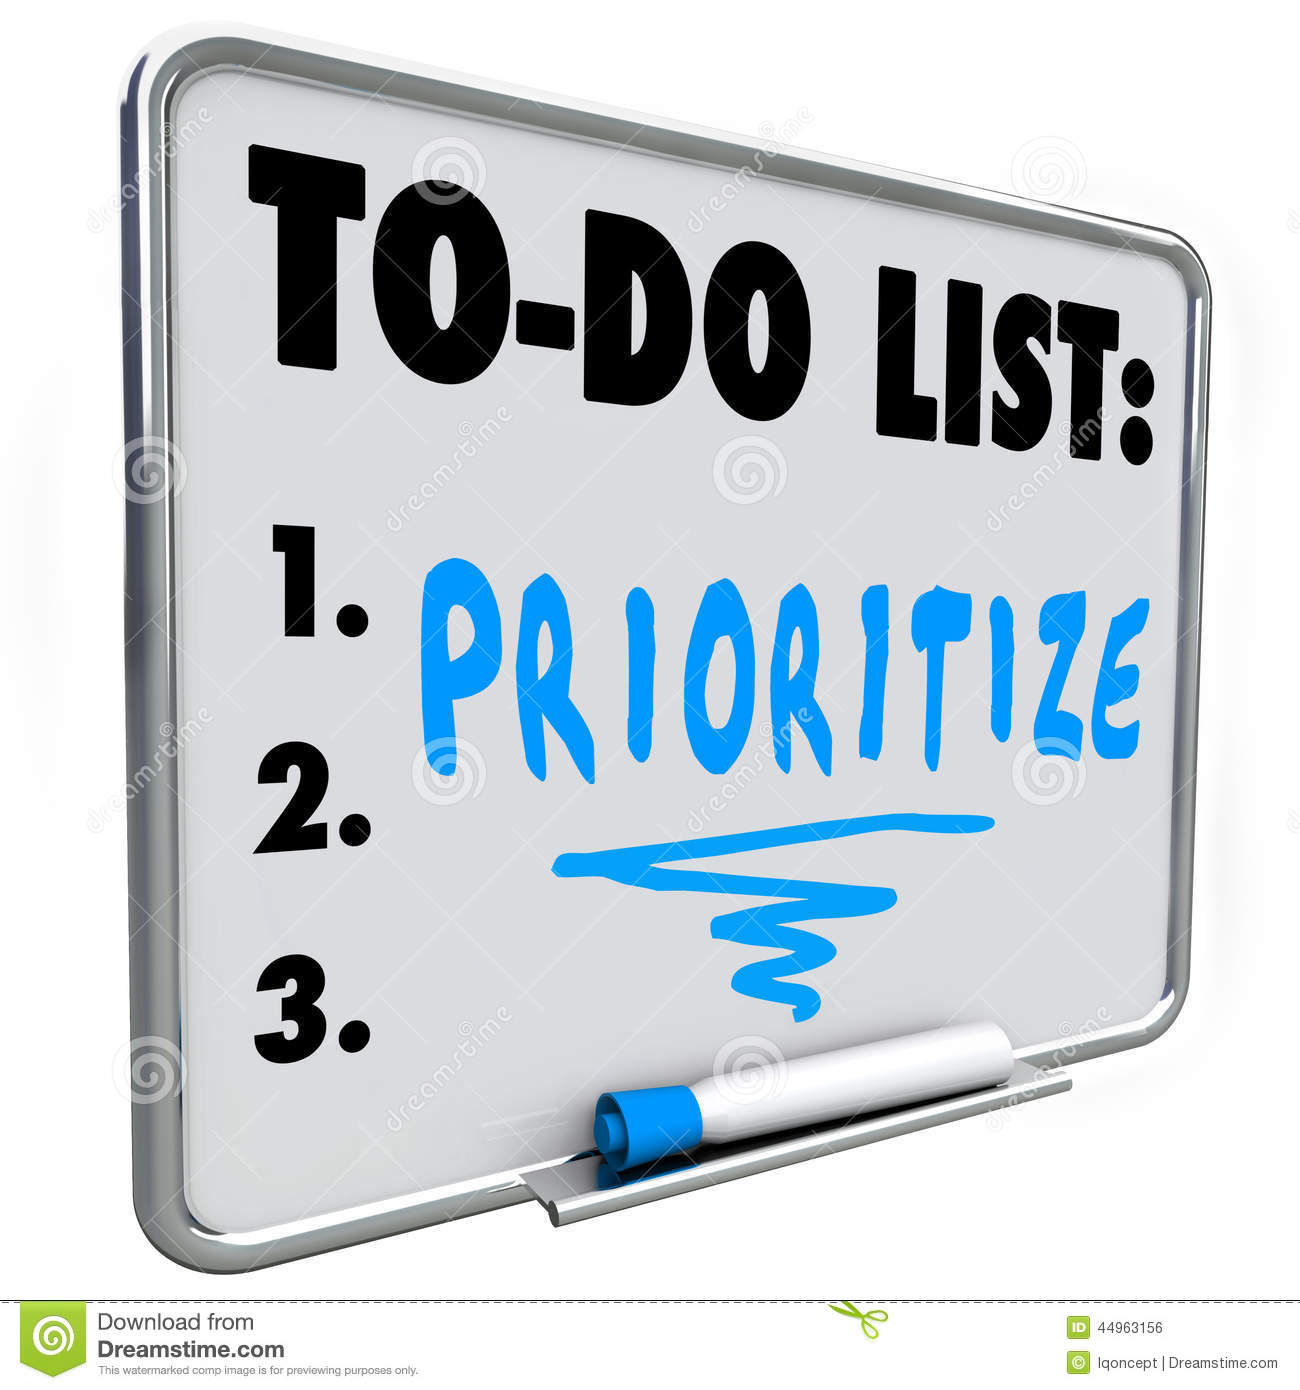 To do list clipart image stock To do list clipart - ClipartFest image stock